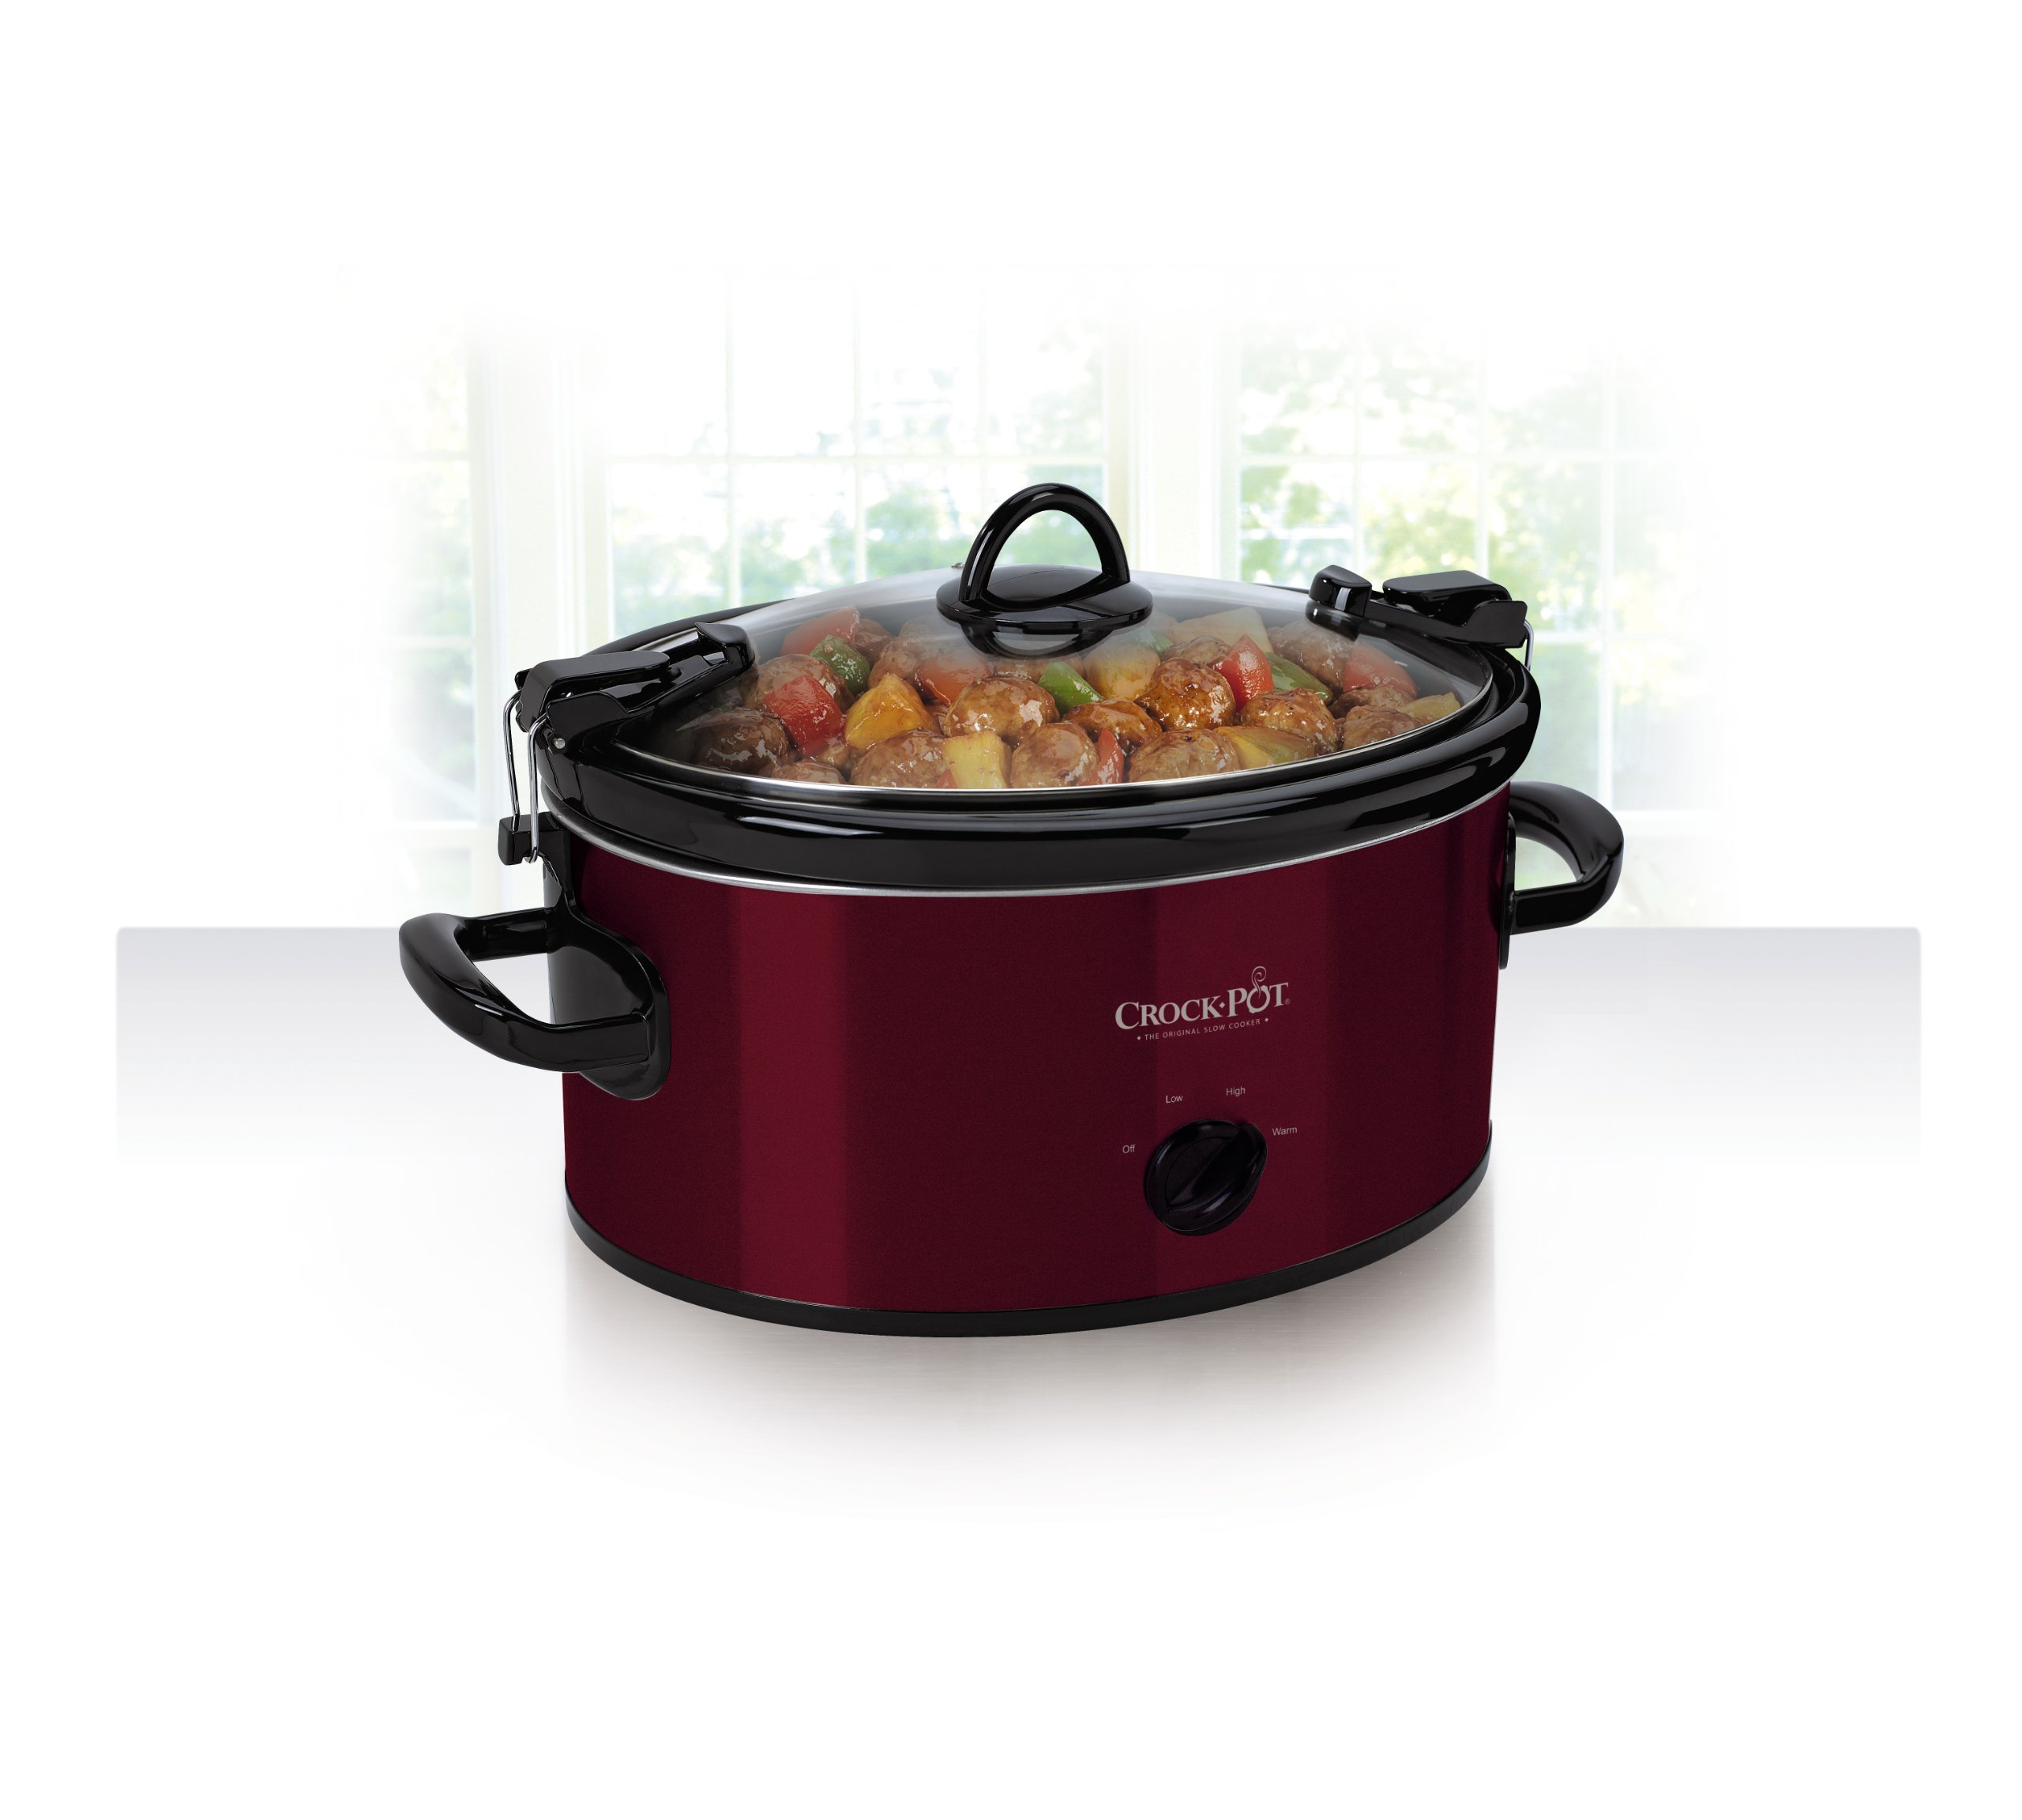 Crock-Pot 6-Quart Cook & Carry Oval Manual Portable Slow Cooker, Red by Crock-Pot (Image #3)